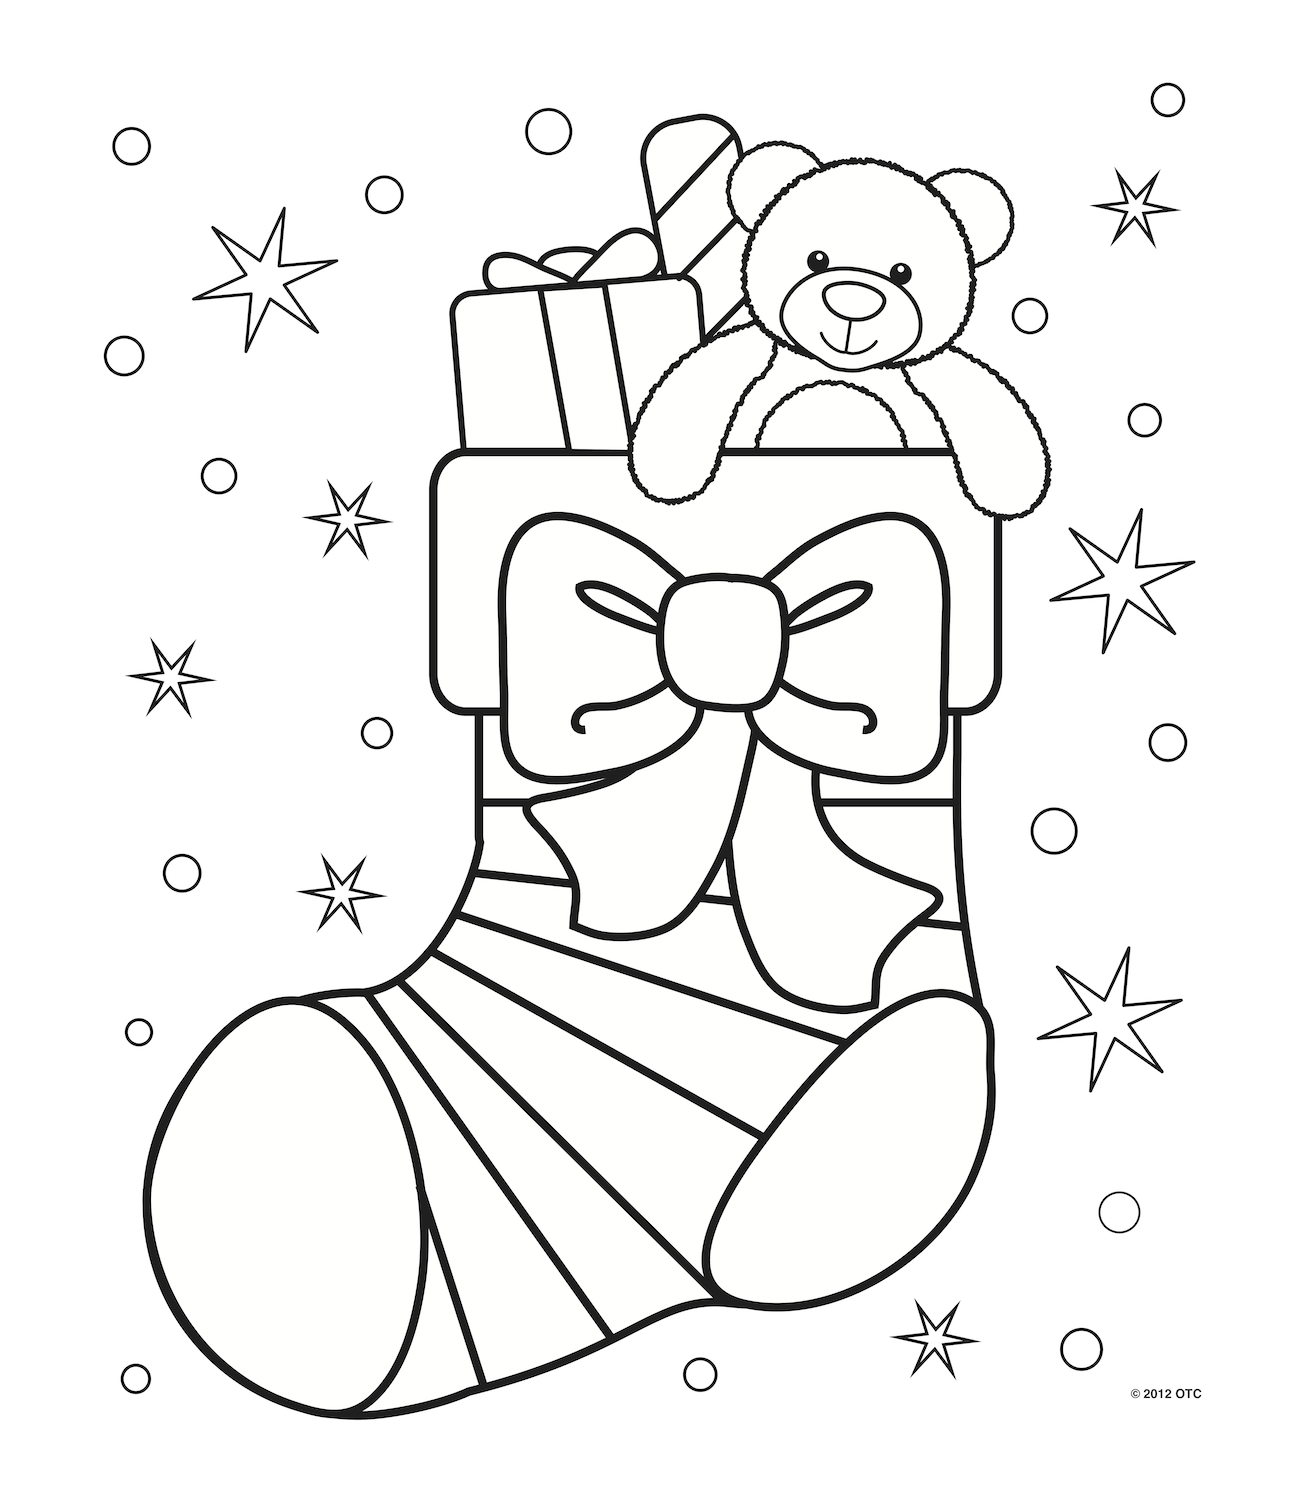 coloring pages christams - photo#29